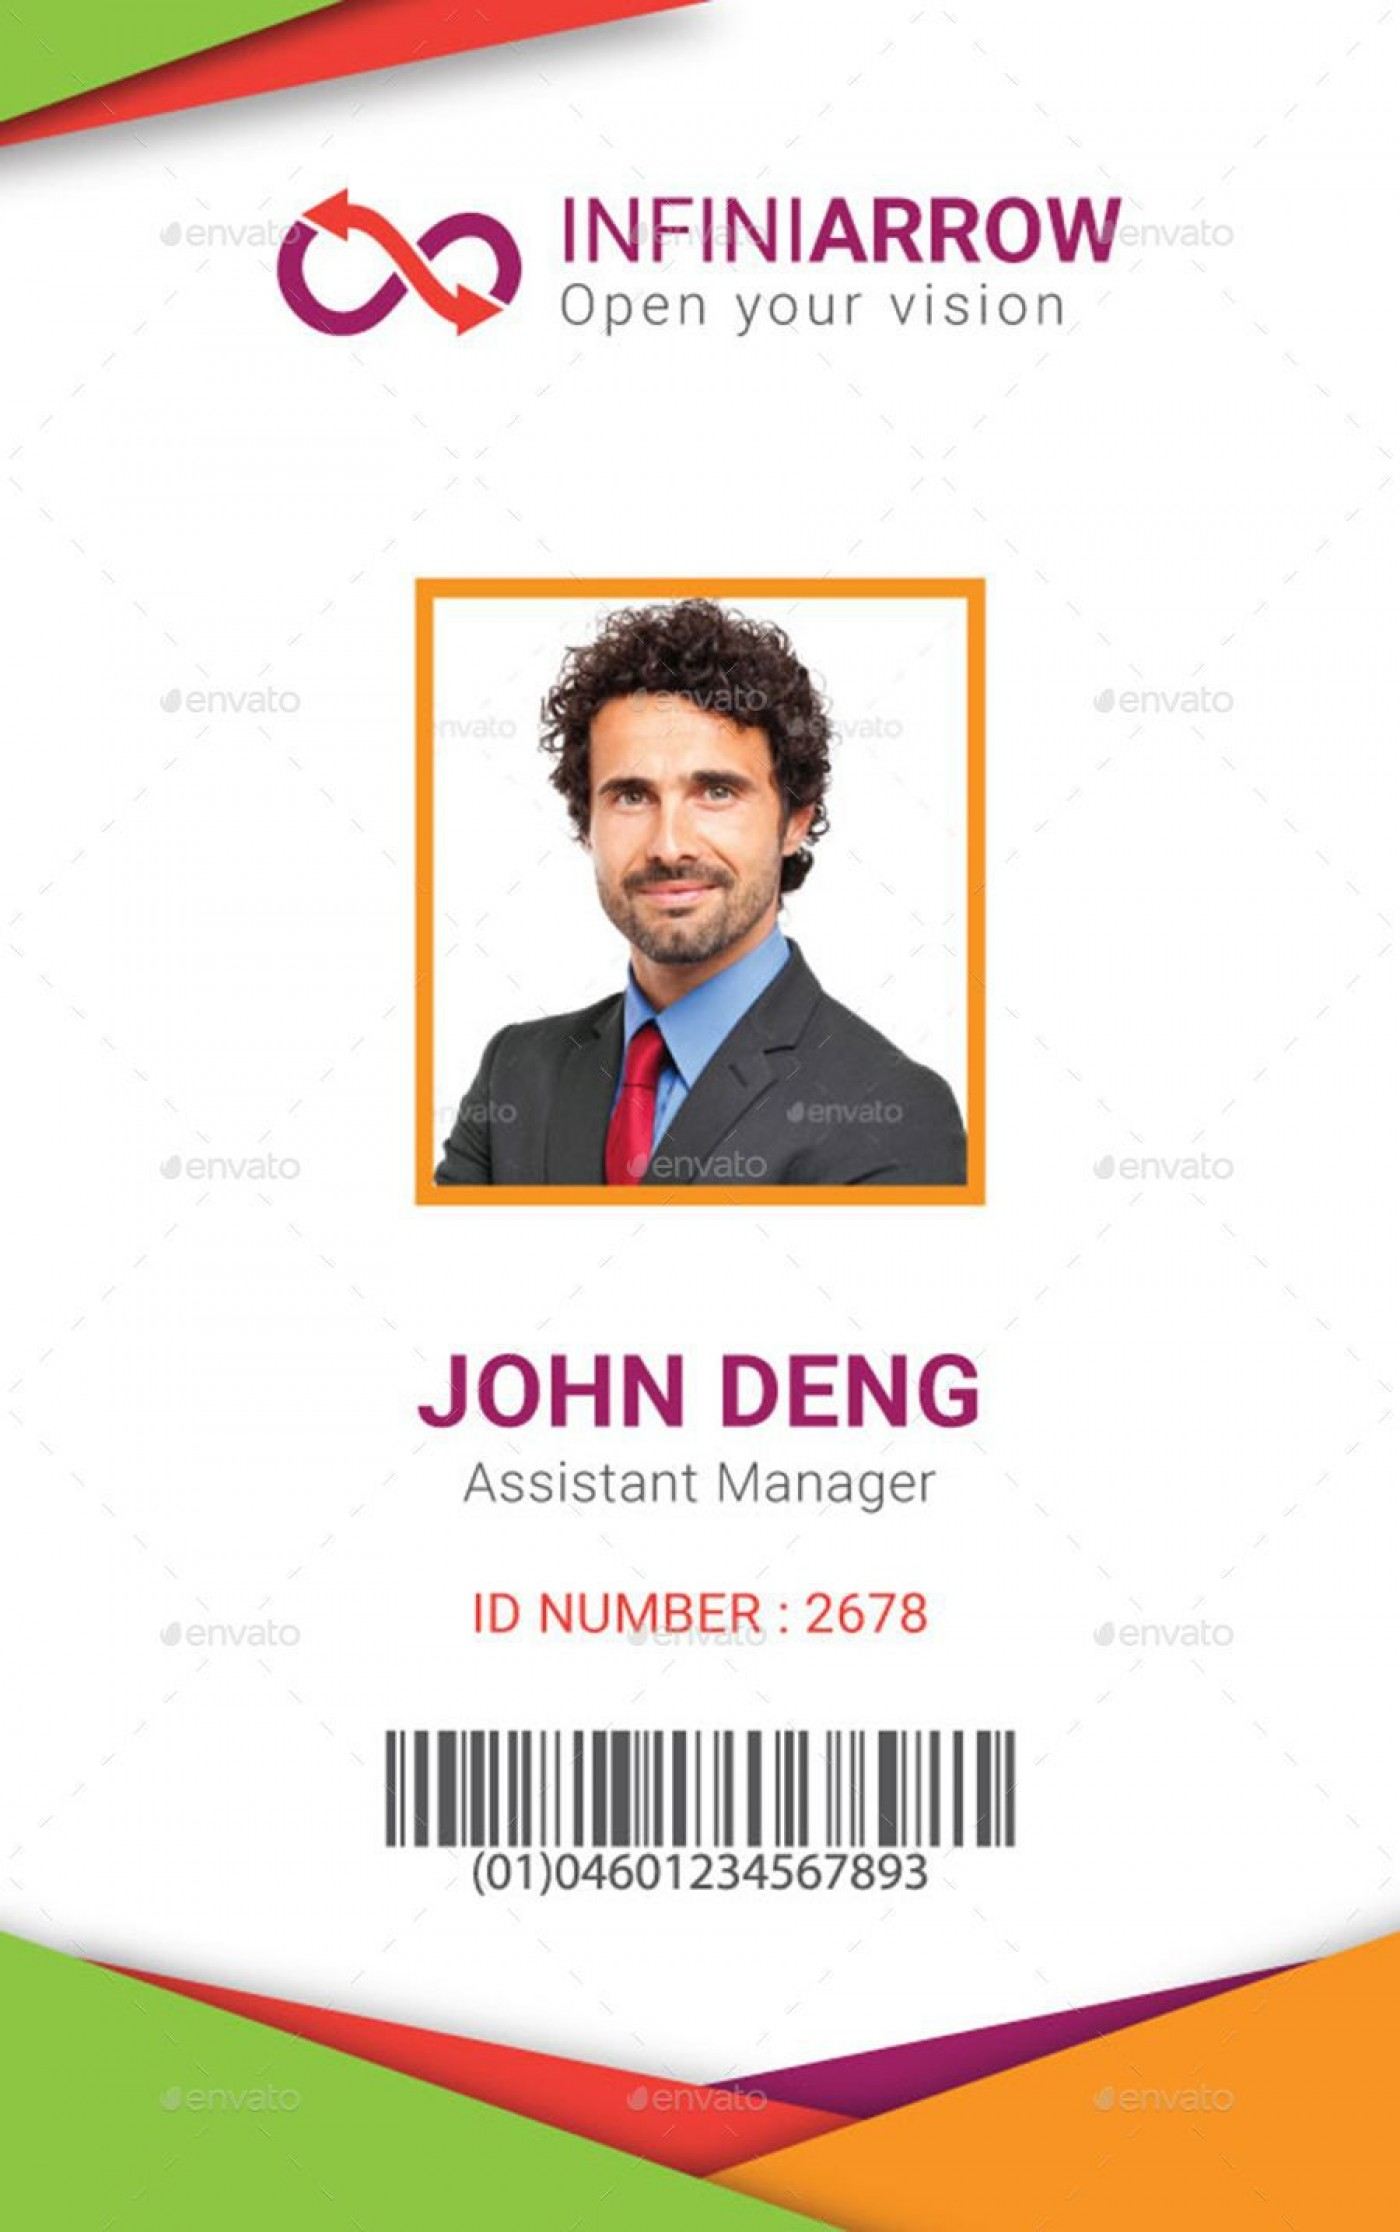 005 Amazing Id Badge Template Photoshop Example  Employee1400